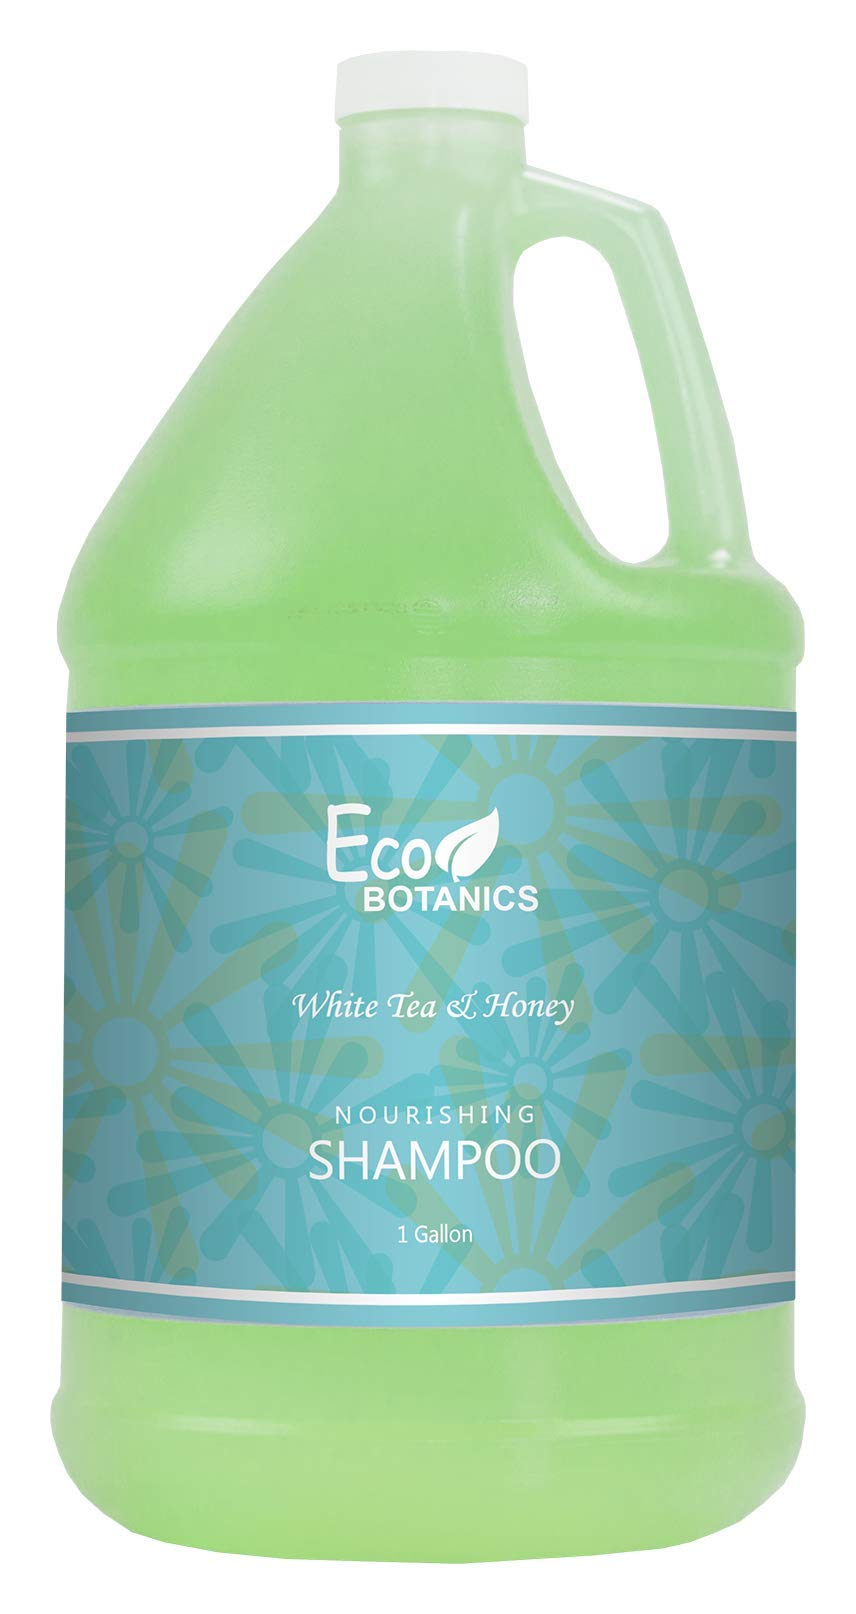 Eco Botanics Hotel Shampoo | 1 Gallon | Designed to Refill Soap Dispensers | by Terra Pure (Single) by Terra Pure